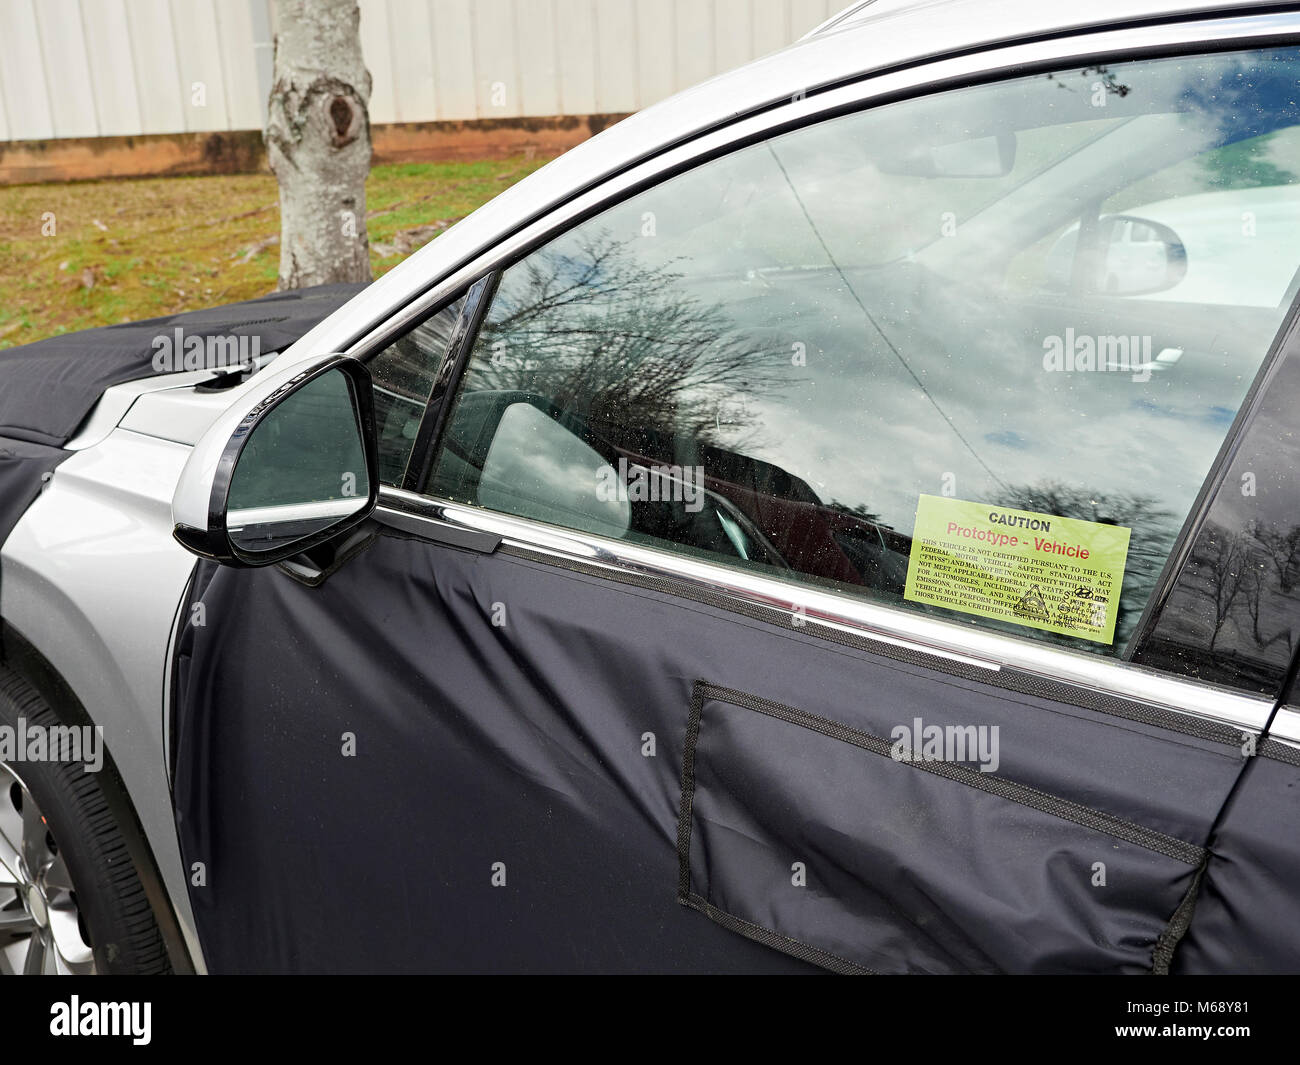 Prototype Hyundai SUV automobile or car disguised in a black vinyl  camouflaged wrap parked in a parking lot in - Stock Image